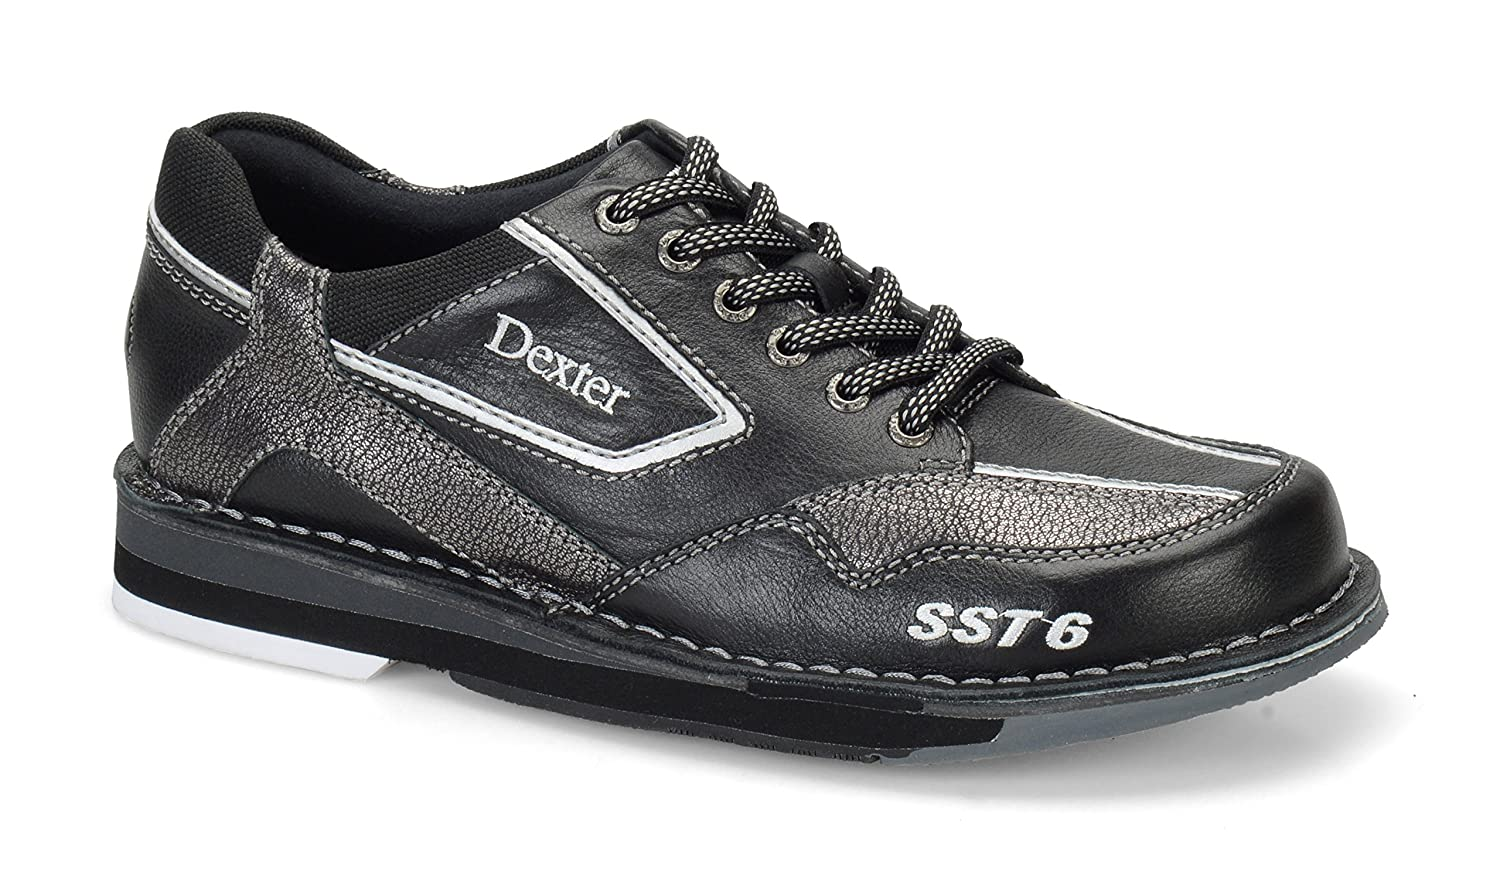 Dexter SST 6 LZ Wide Bowling Shoes B00ZBW2W5I 11.0|Black/Alloy